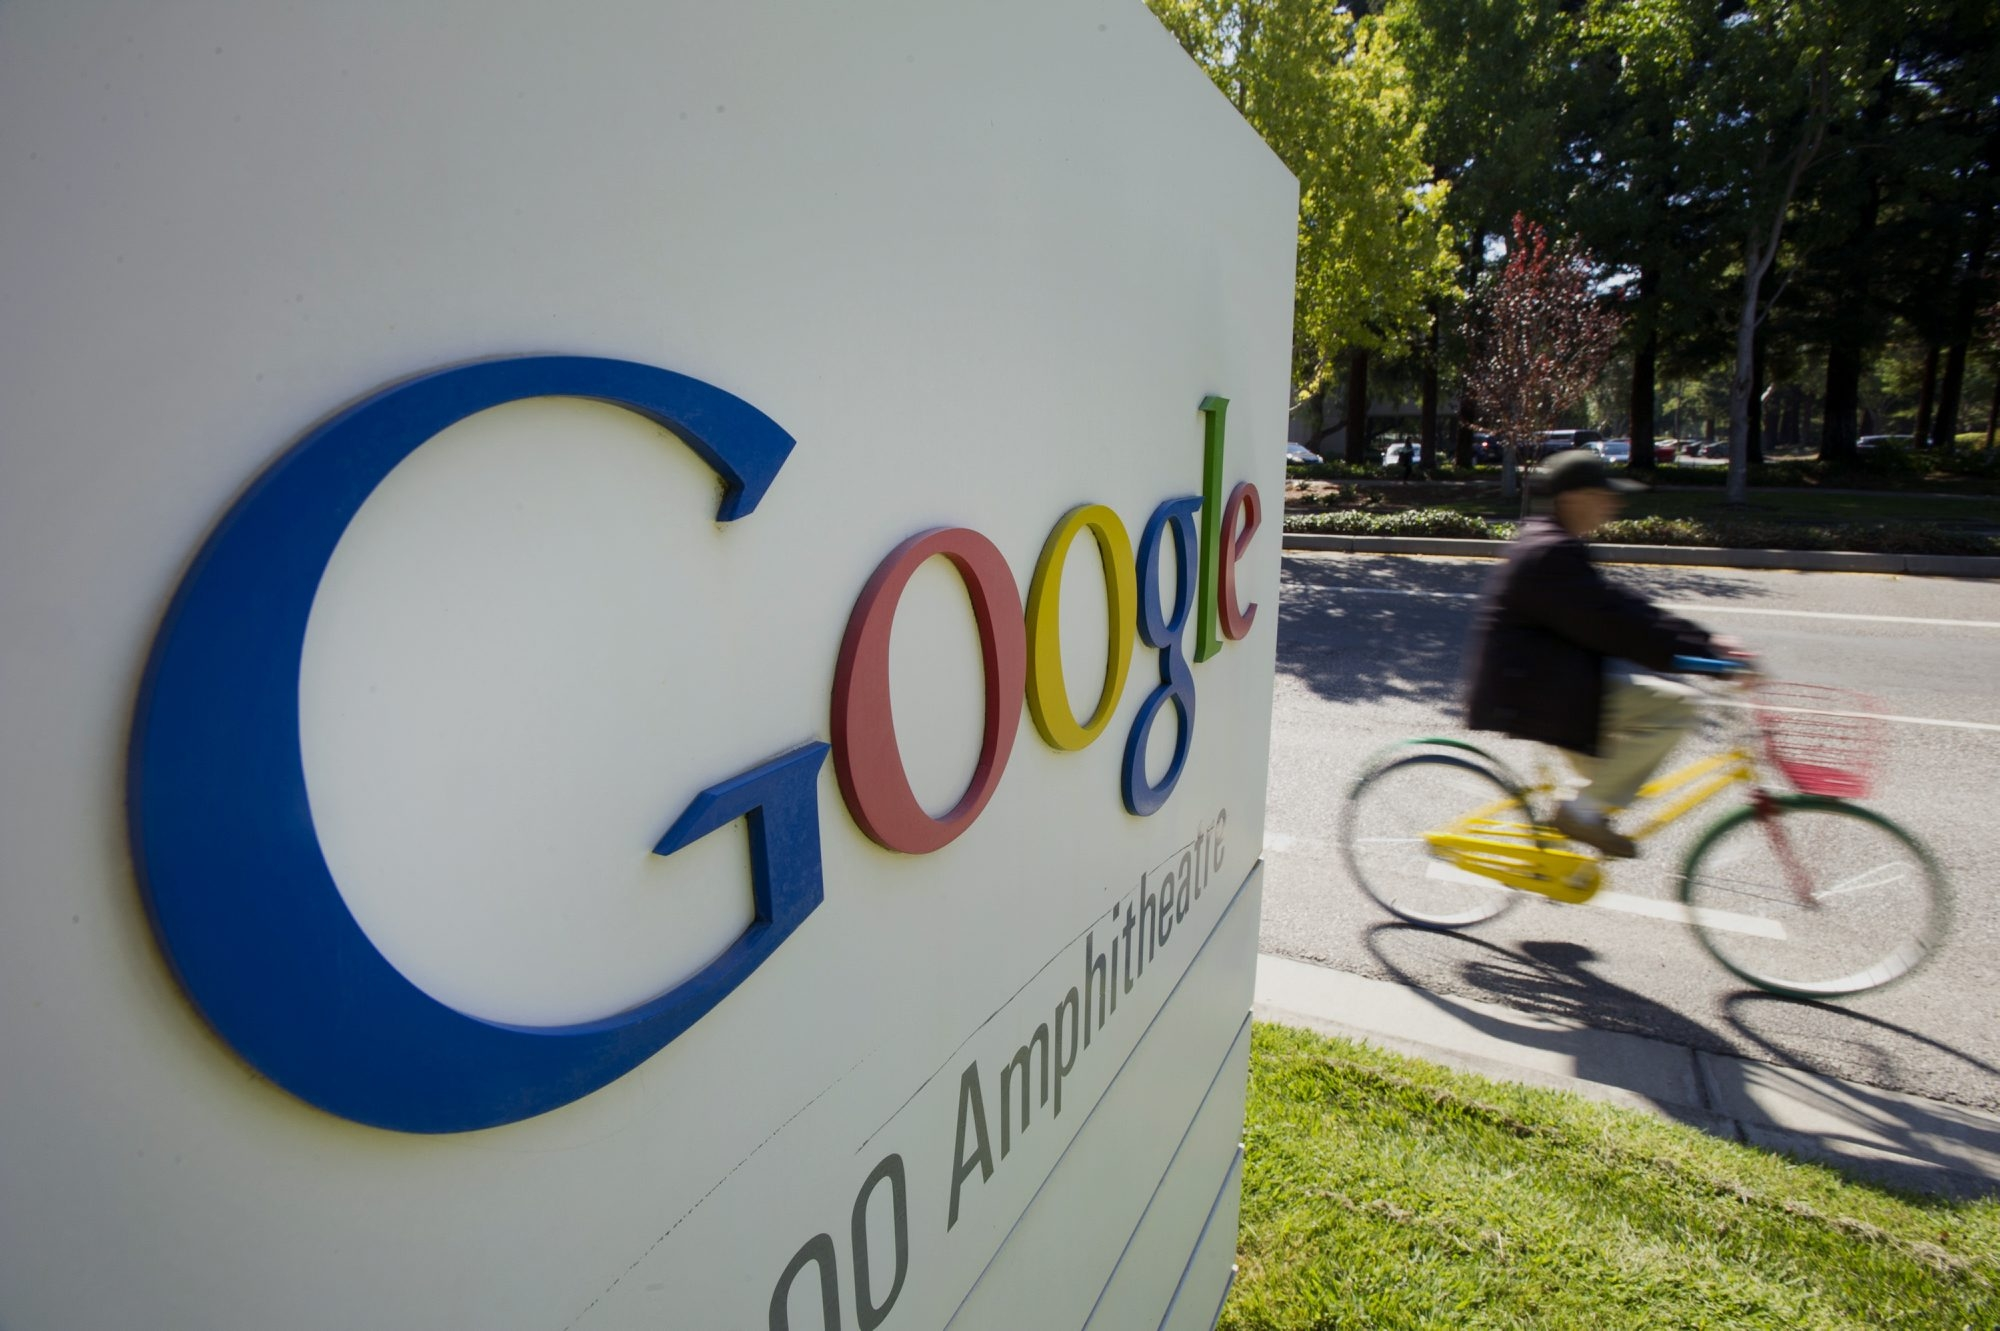 A bicyclist rides his bike past a Google Inc. sign in front of the company's headquarters in Mountain View, California, U.S., on Friday, Sept. 27, 2013. Google is celebrating its 15th anniversary as the company reaches $290 billion market value. Photographer: David Paul Morris/Bloomberg